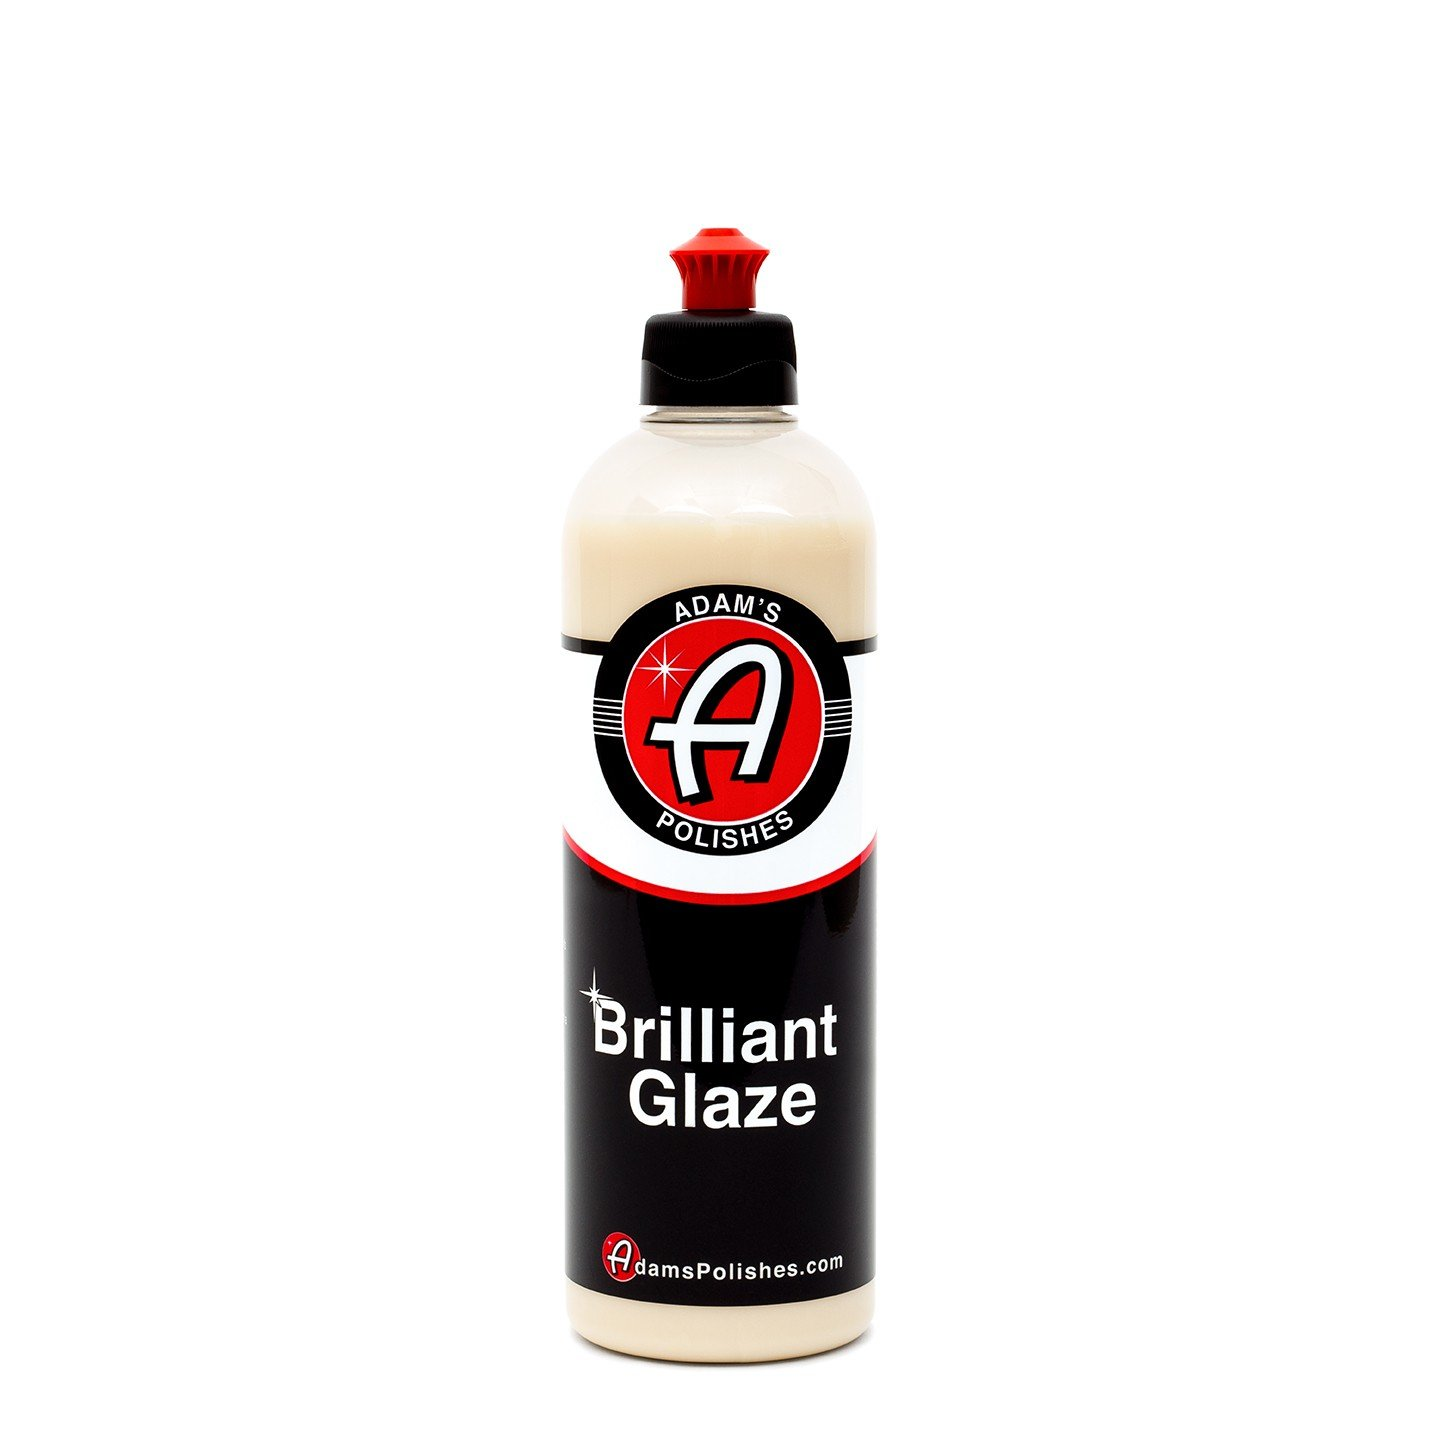 Adam's Brilliant Glaze 16oz - Amazing Depth, Gloss and Clarity - Achieve that Deep, Wet Looking Shine - Super Easy On and Easy Off (16 oz)